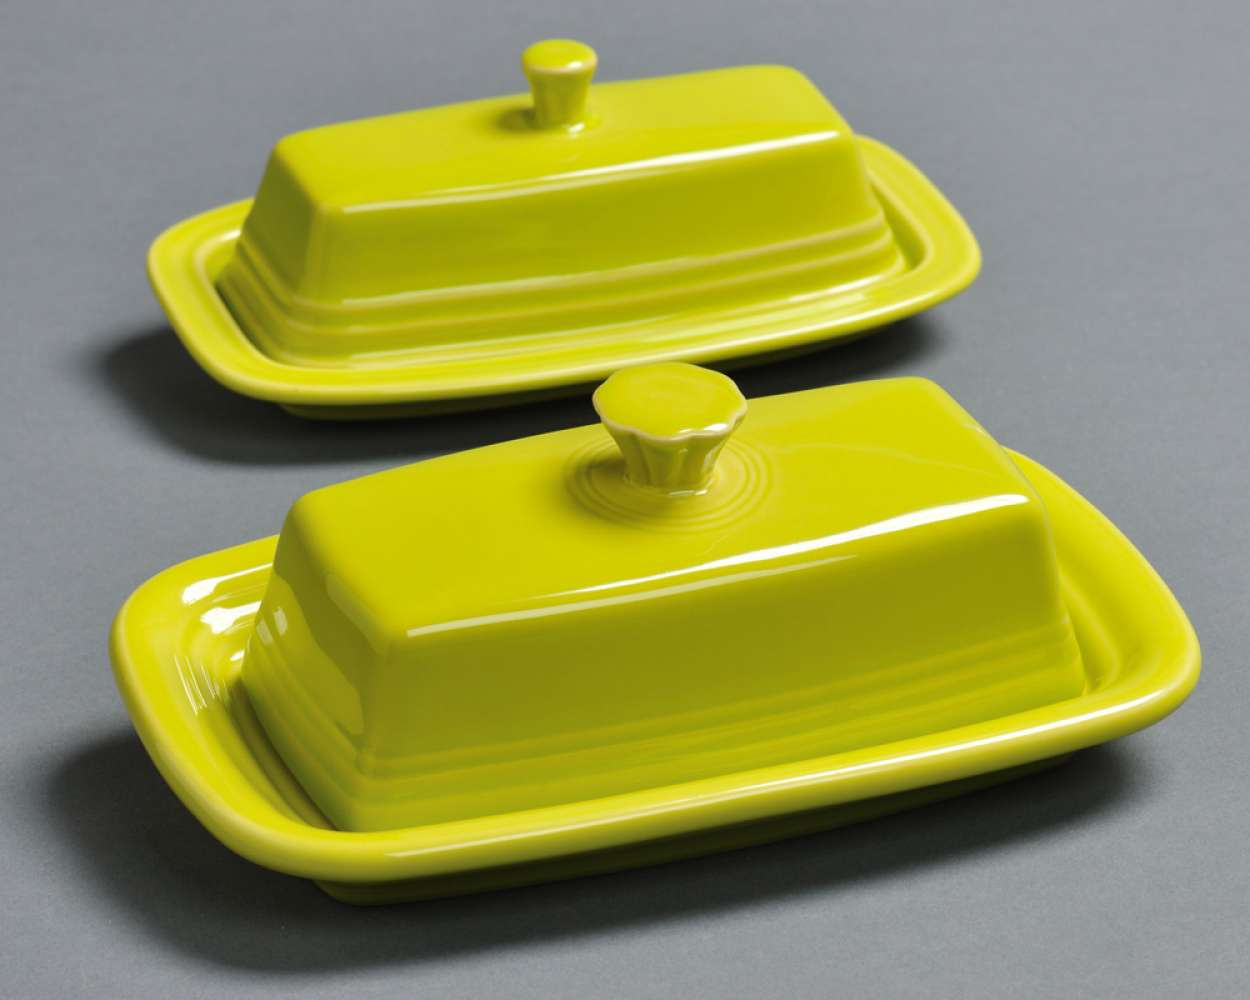 Fiestaware Extra Large Butter Dish Tabletop Gourmet Retailer For Serveware Ideas